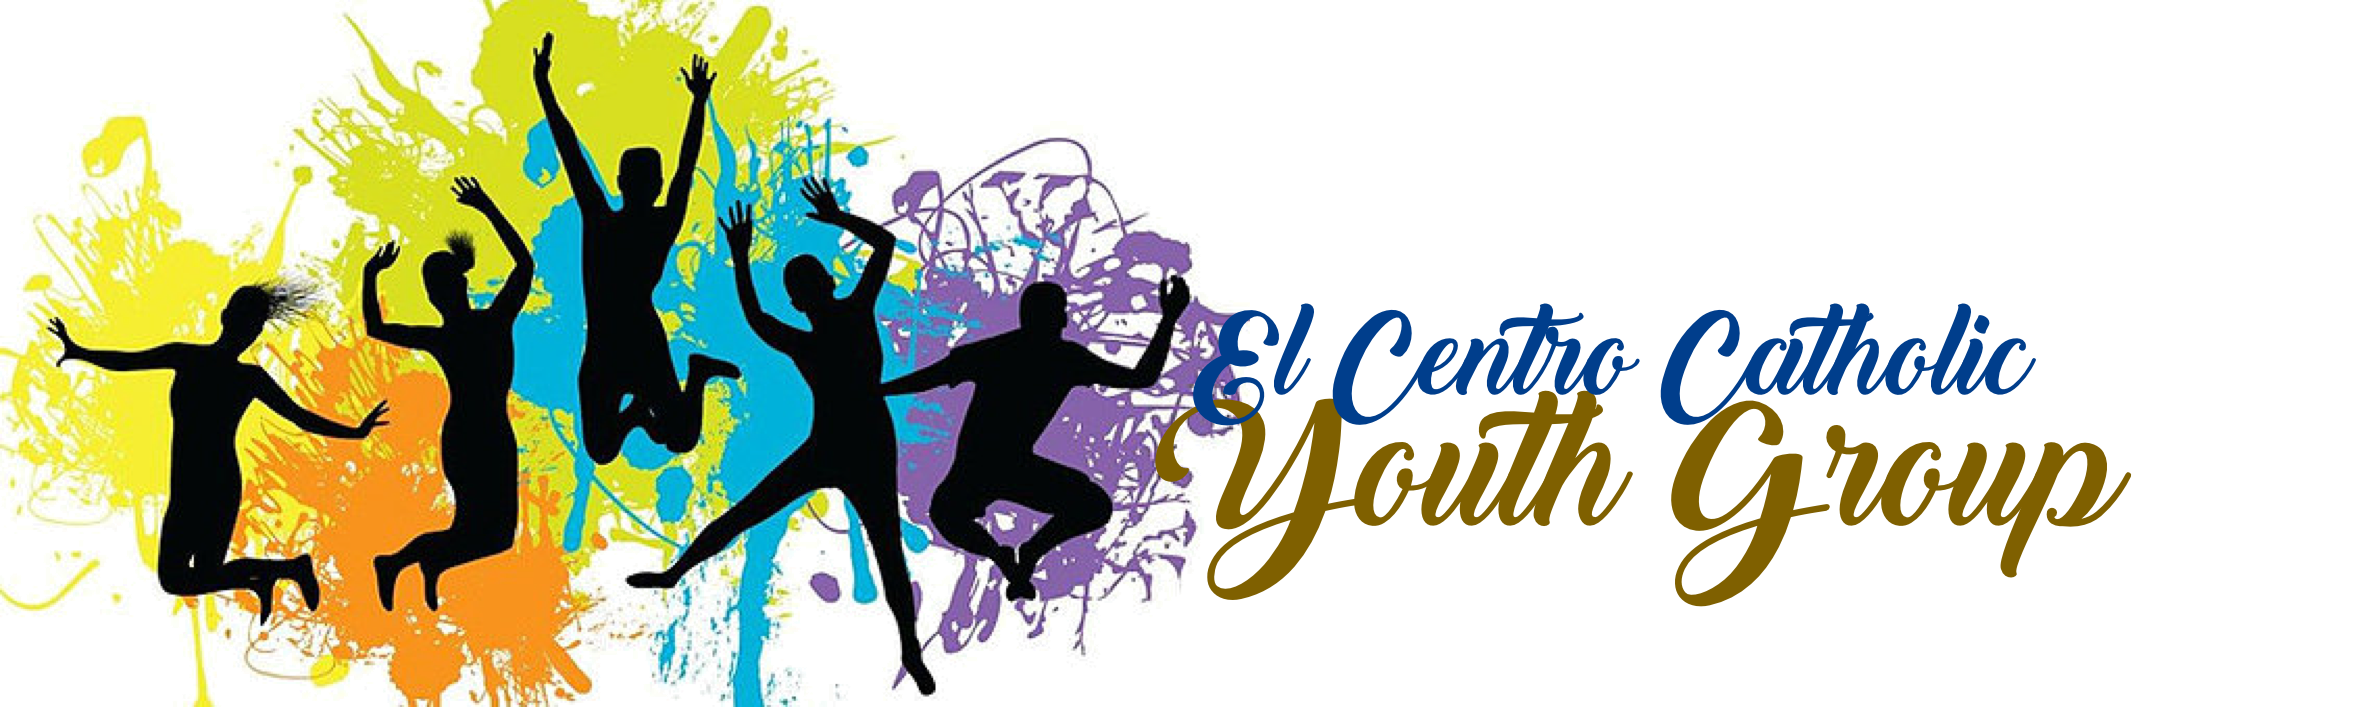 El centro clipart clipart free stock Youth Group - Welcome to El Centro Catholic clipart free stock